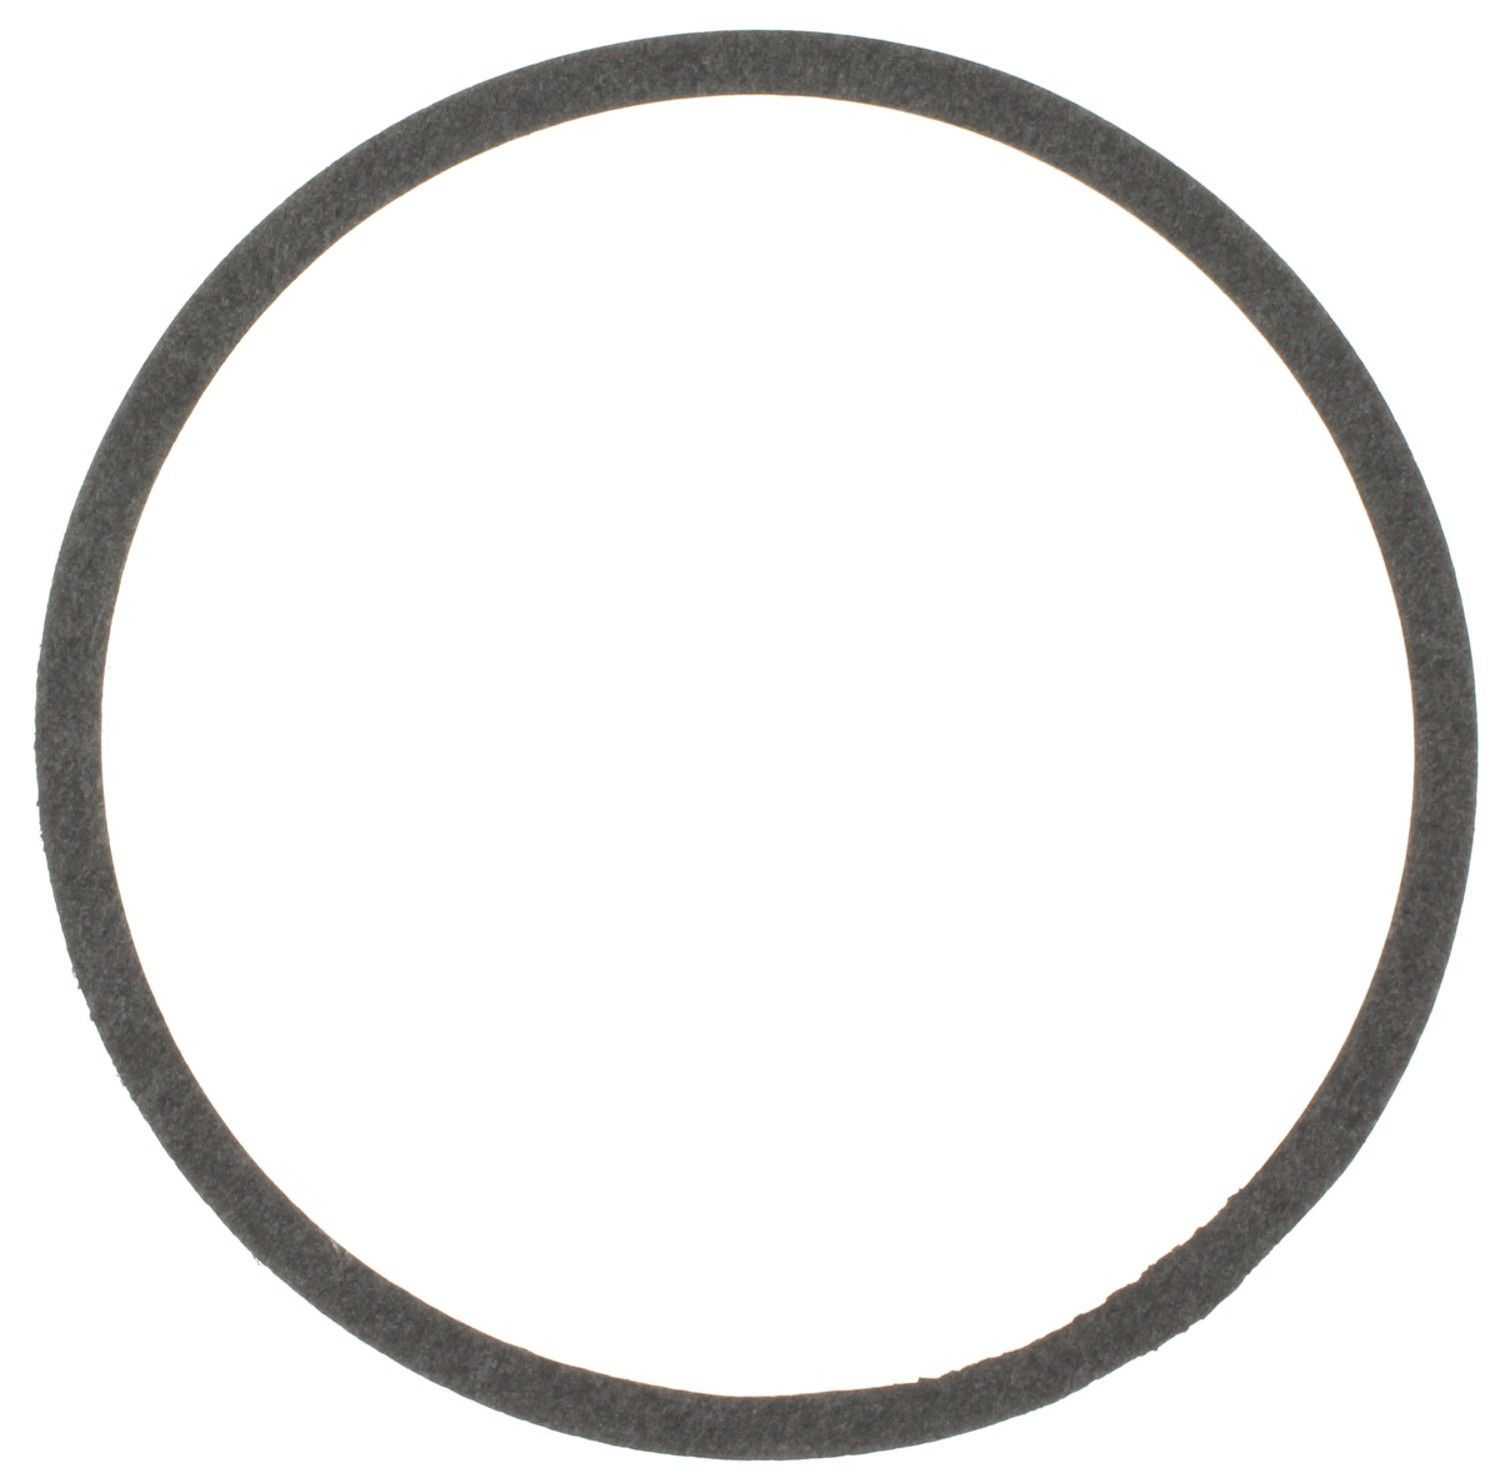 1979 CHEVROLET K10 SUBURBAN Air Cleaner Mounting Gasket